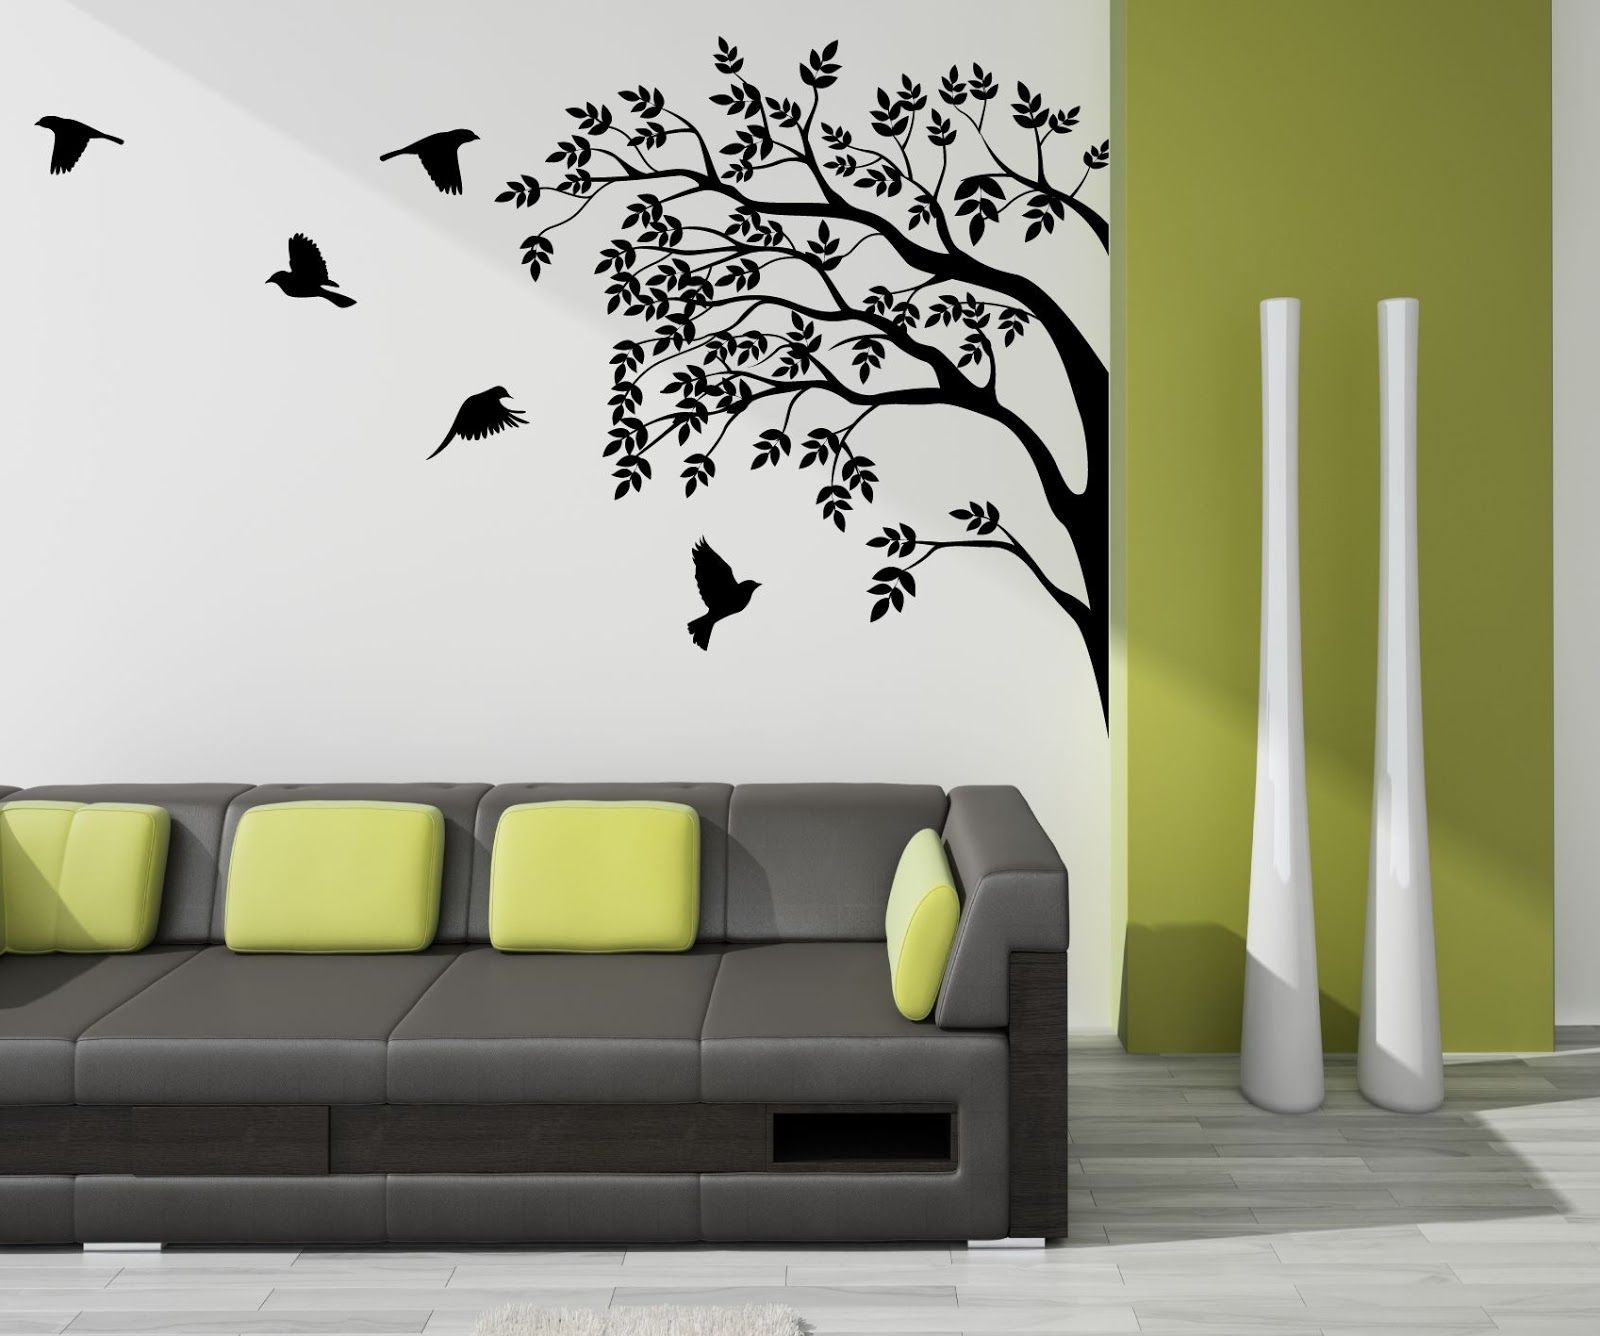 Decoration For Your Home Interior With Stunning Tree Images Wall Art